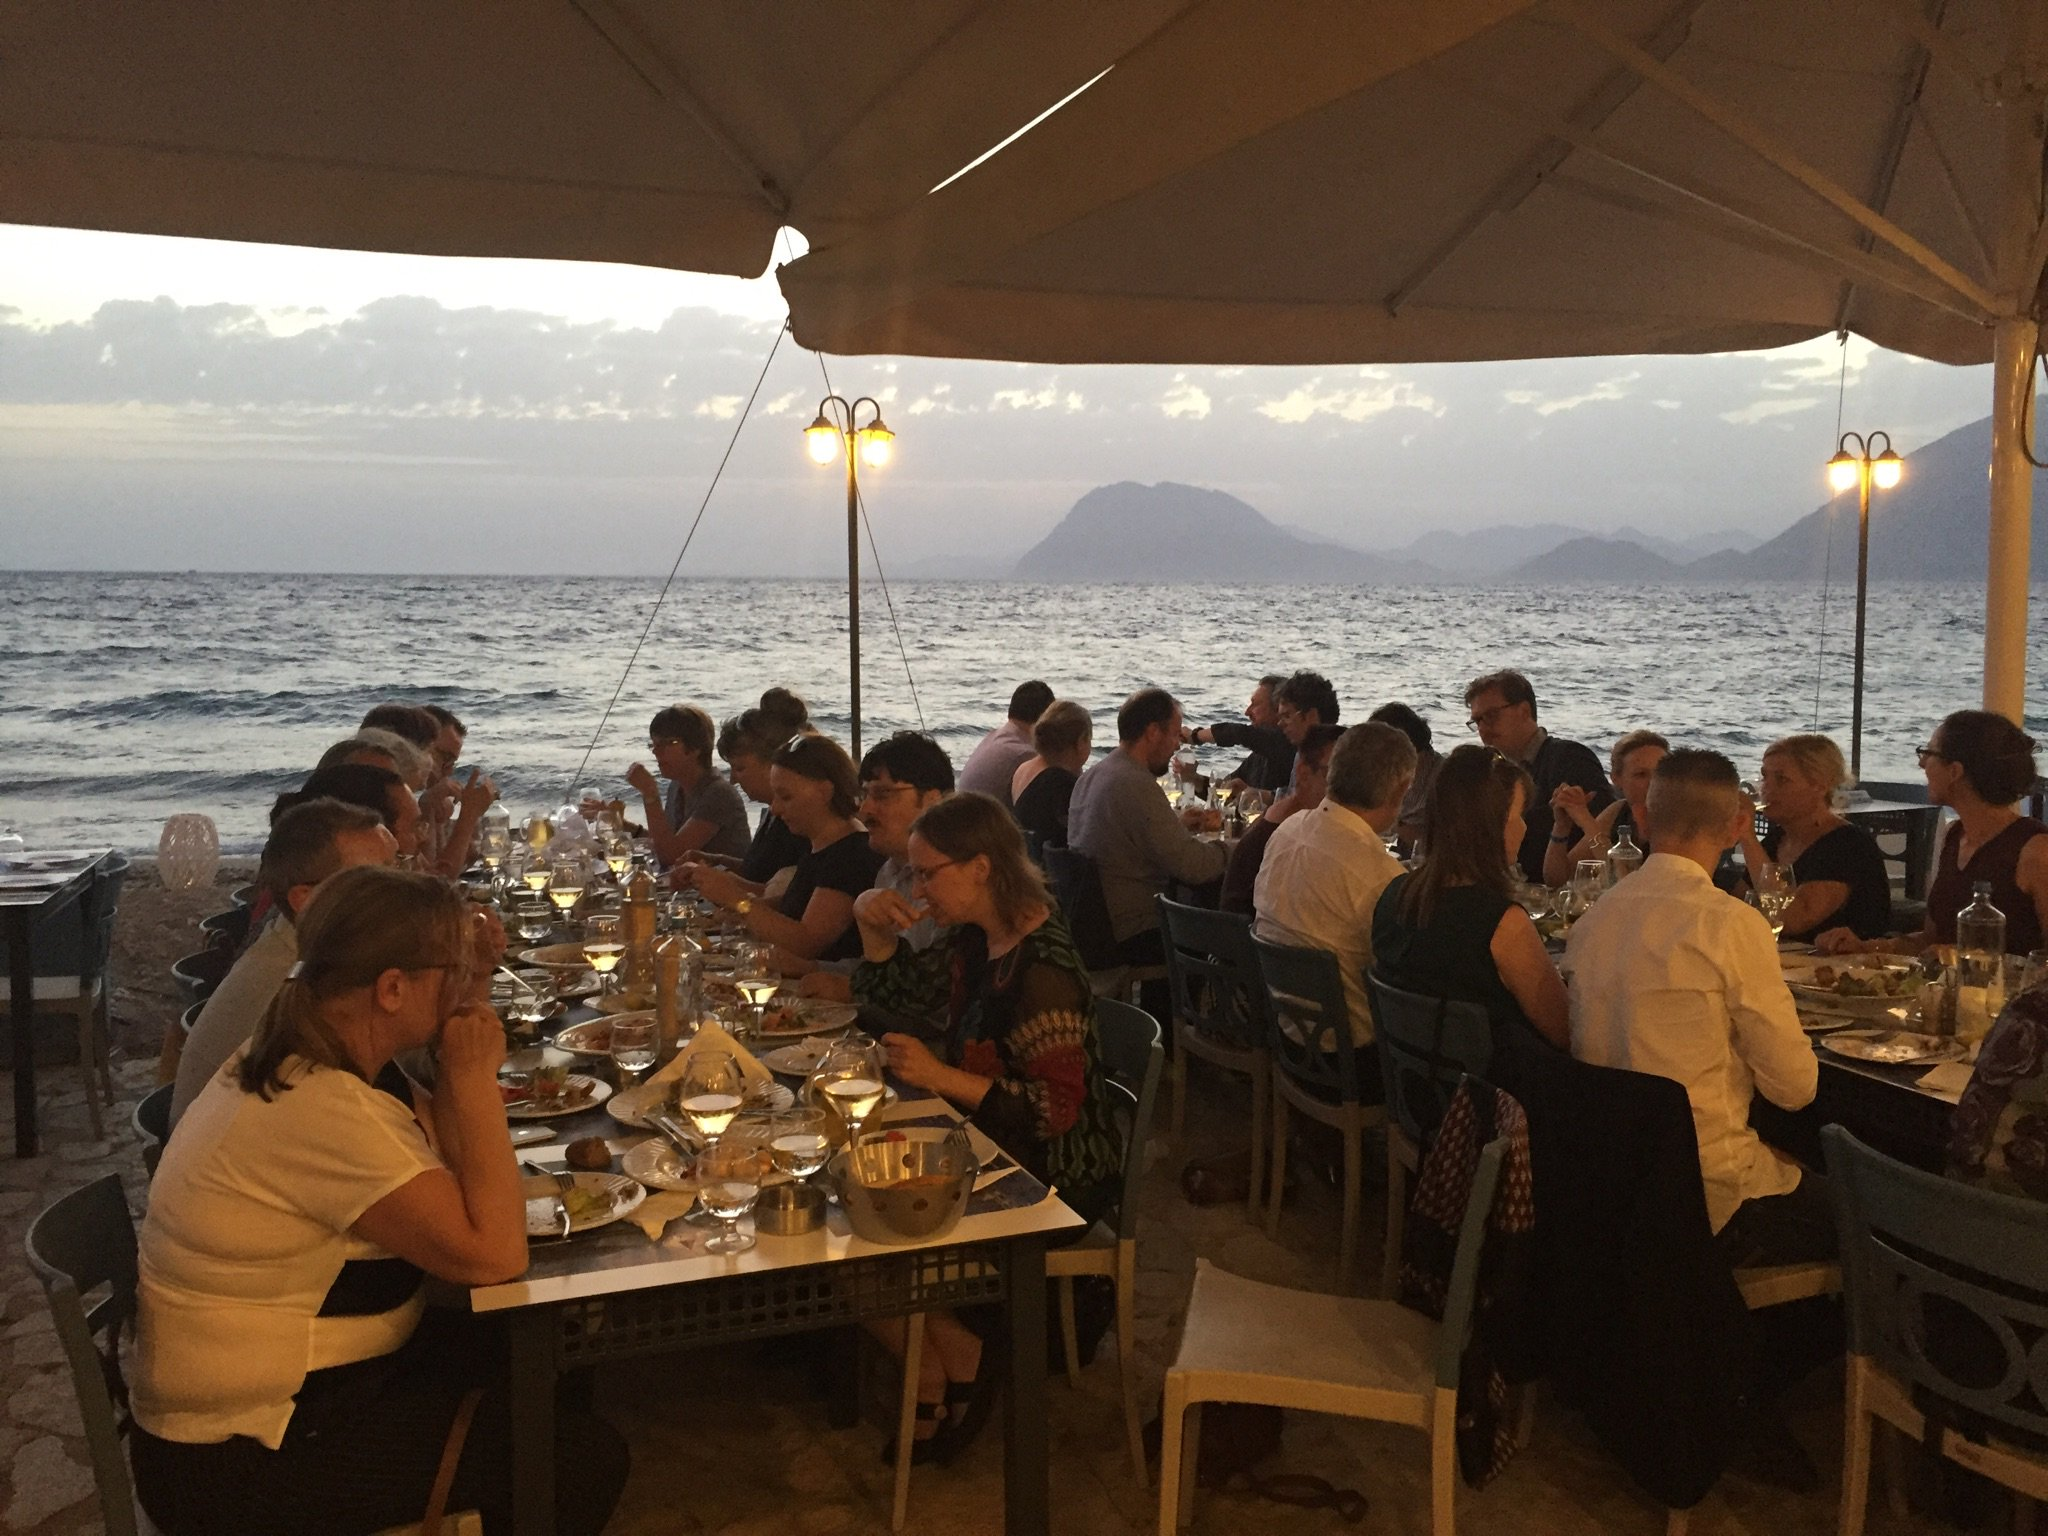 .@lorcanD you asked, we gladly deliver ;-) This was last nights #LIBERemergingleaders diner #liber2017 #patras https://t.co/tqLrnopBvu